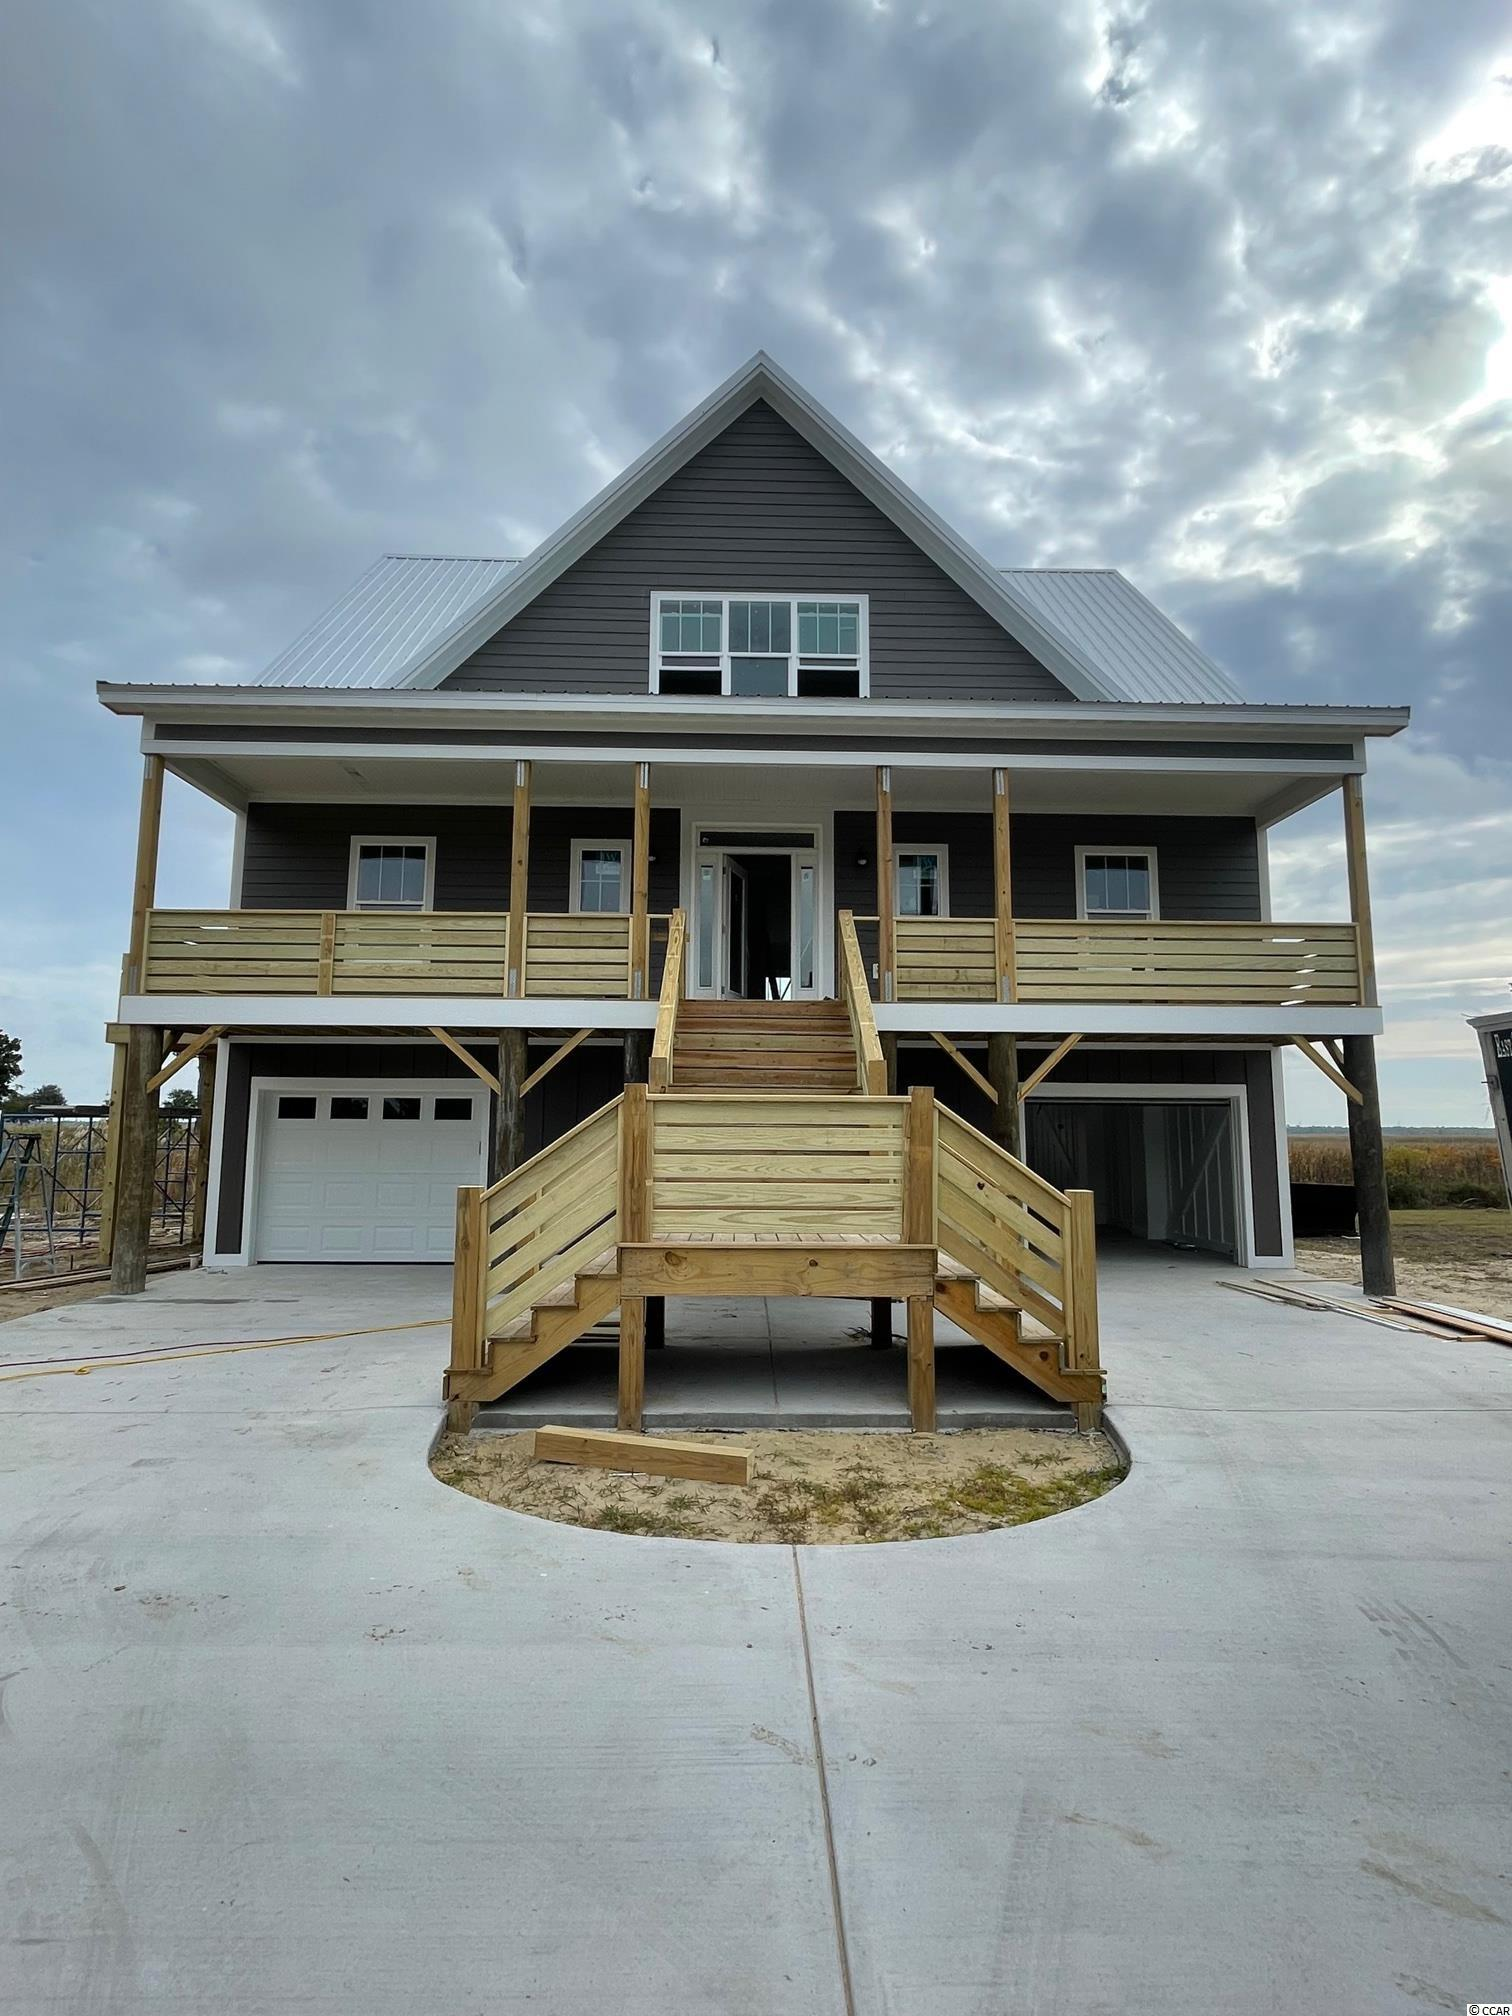 Look no further, Oak Bay Drive is a beautifully designed  home with a picturesque view of the  Winyah Bay and Intracoastal Waterway. This four bedroom, three and one half bathroom, raised beach style home sits on a gorgeous marsh front lot located in the community of The Oaks on Winyah Bay. There are wide decks on both levels providing panoramic views of the Winyah Bay. The primary bedroom is on the main level; 3 additional bedrooms with a den are located on the second level  This waterfront community has amenities which include a pool, hot tub and a Day Dock on the Winyah Bay.  Not only are you 15 minutes from the wonderful beaches on Pawleys Island, you are also minutes from several public boat landings and East Bay Park. Come Make this your forever home, just minutes from the shopping and dining in Downtown Georgetown, and centrally located halfway between Charleston and Myrtle Beach.